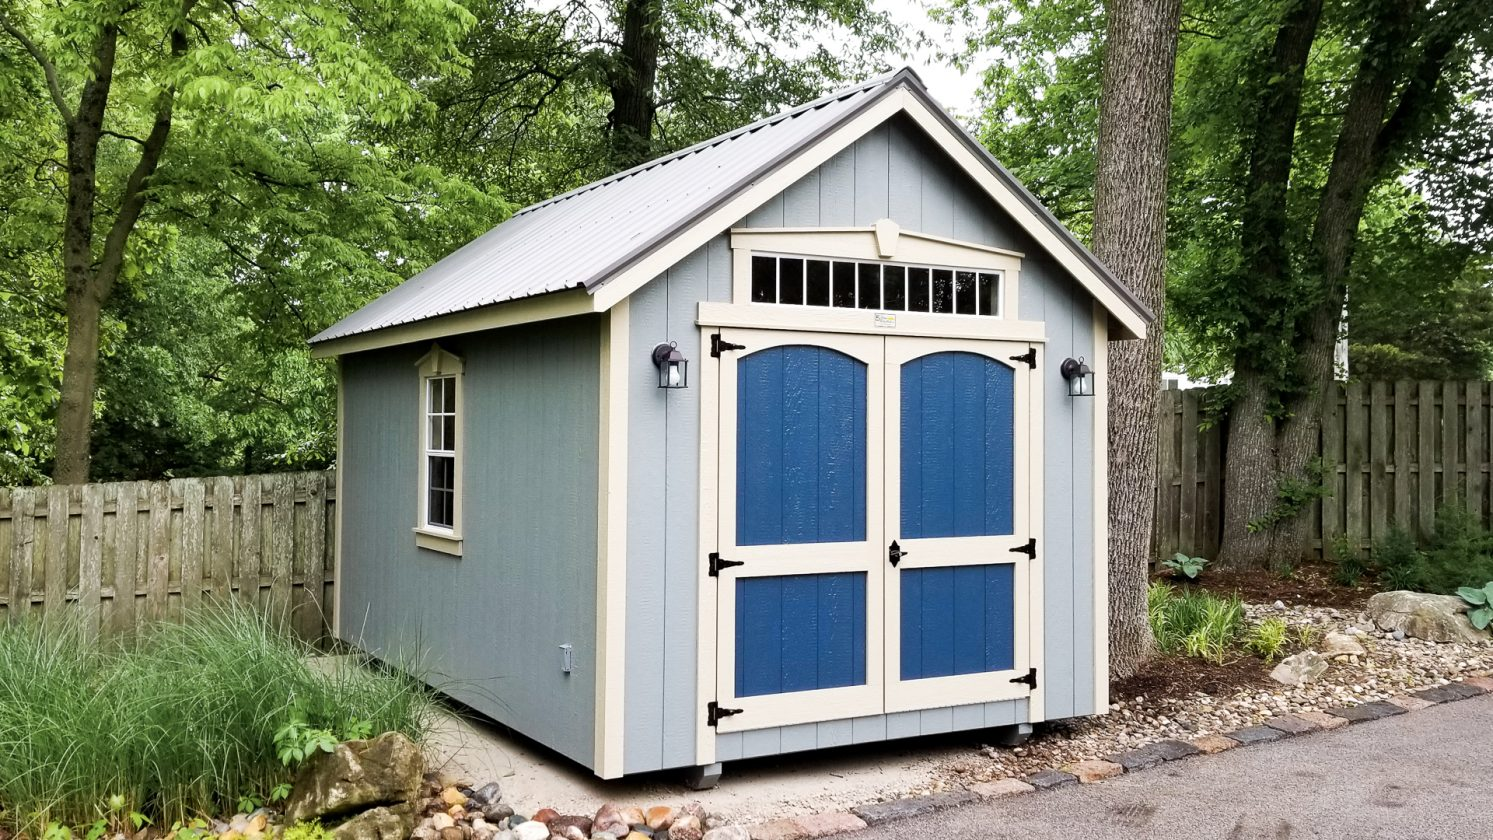 5 star buildings best sheds for sale in missouri 1